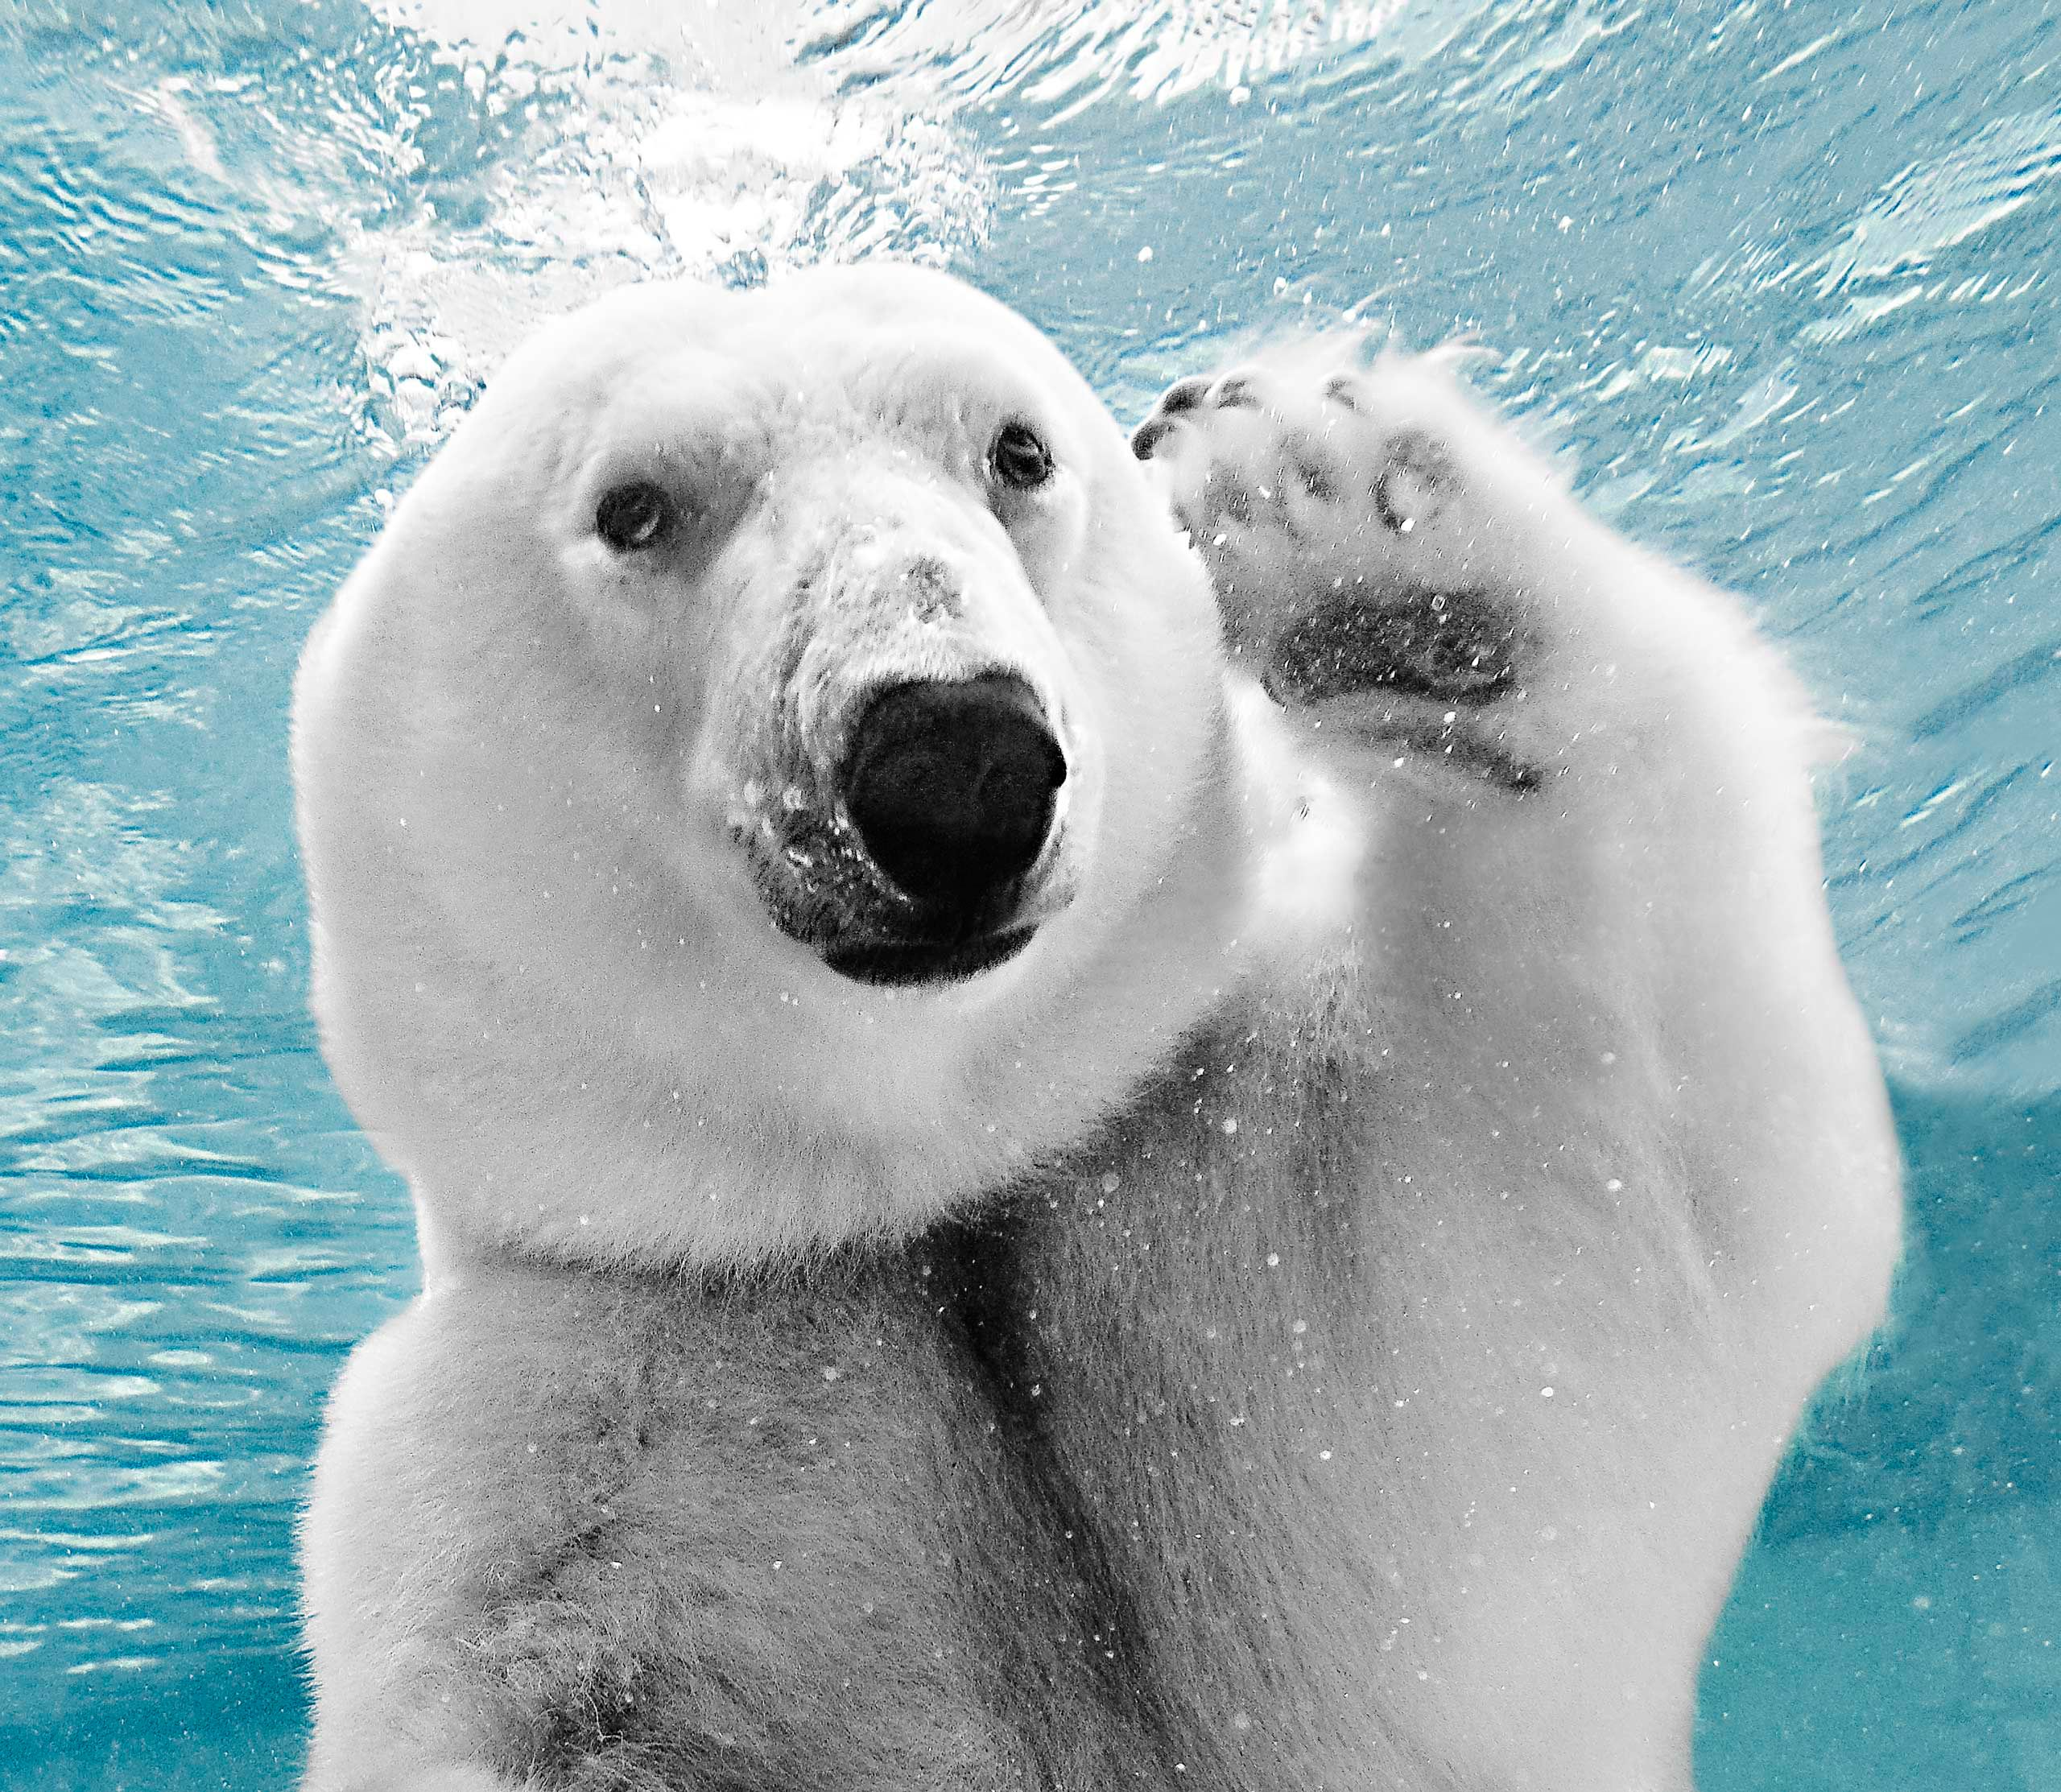 Polar Bear Waving Hello While Under Water.jpg